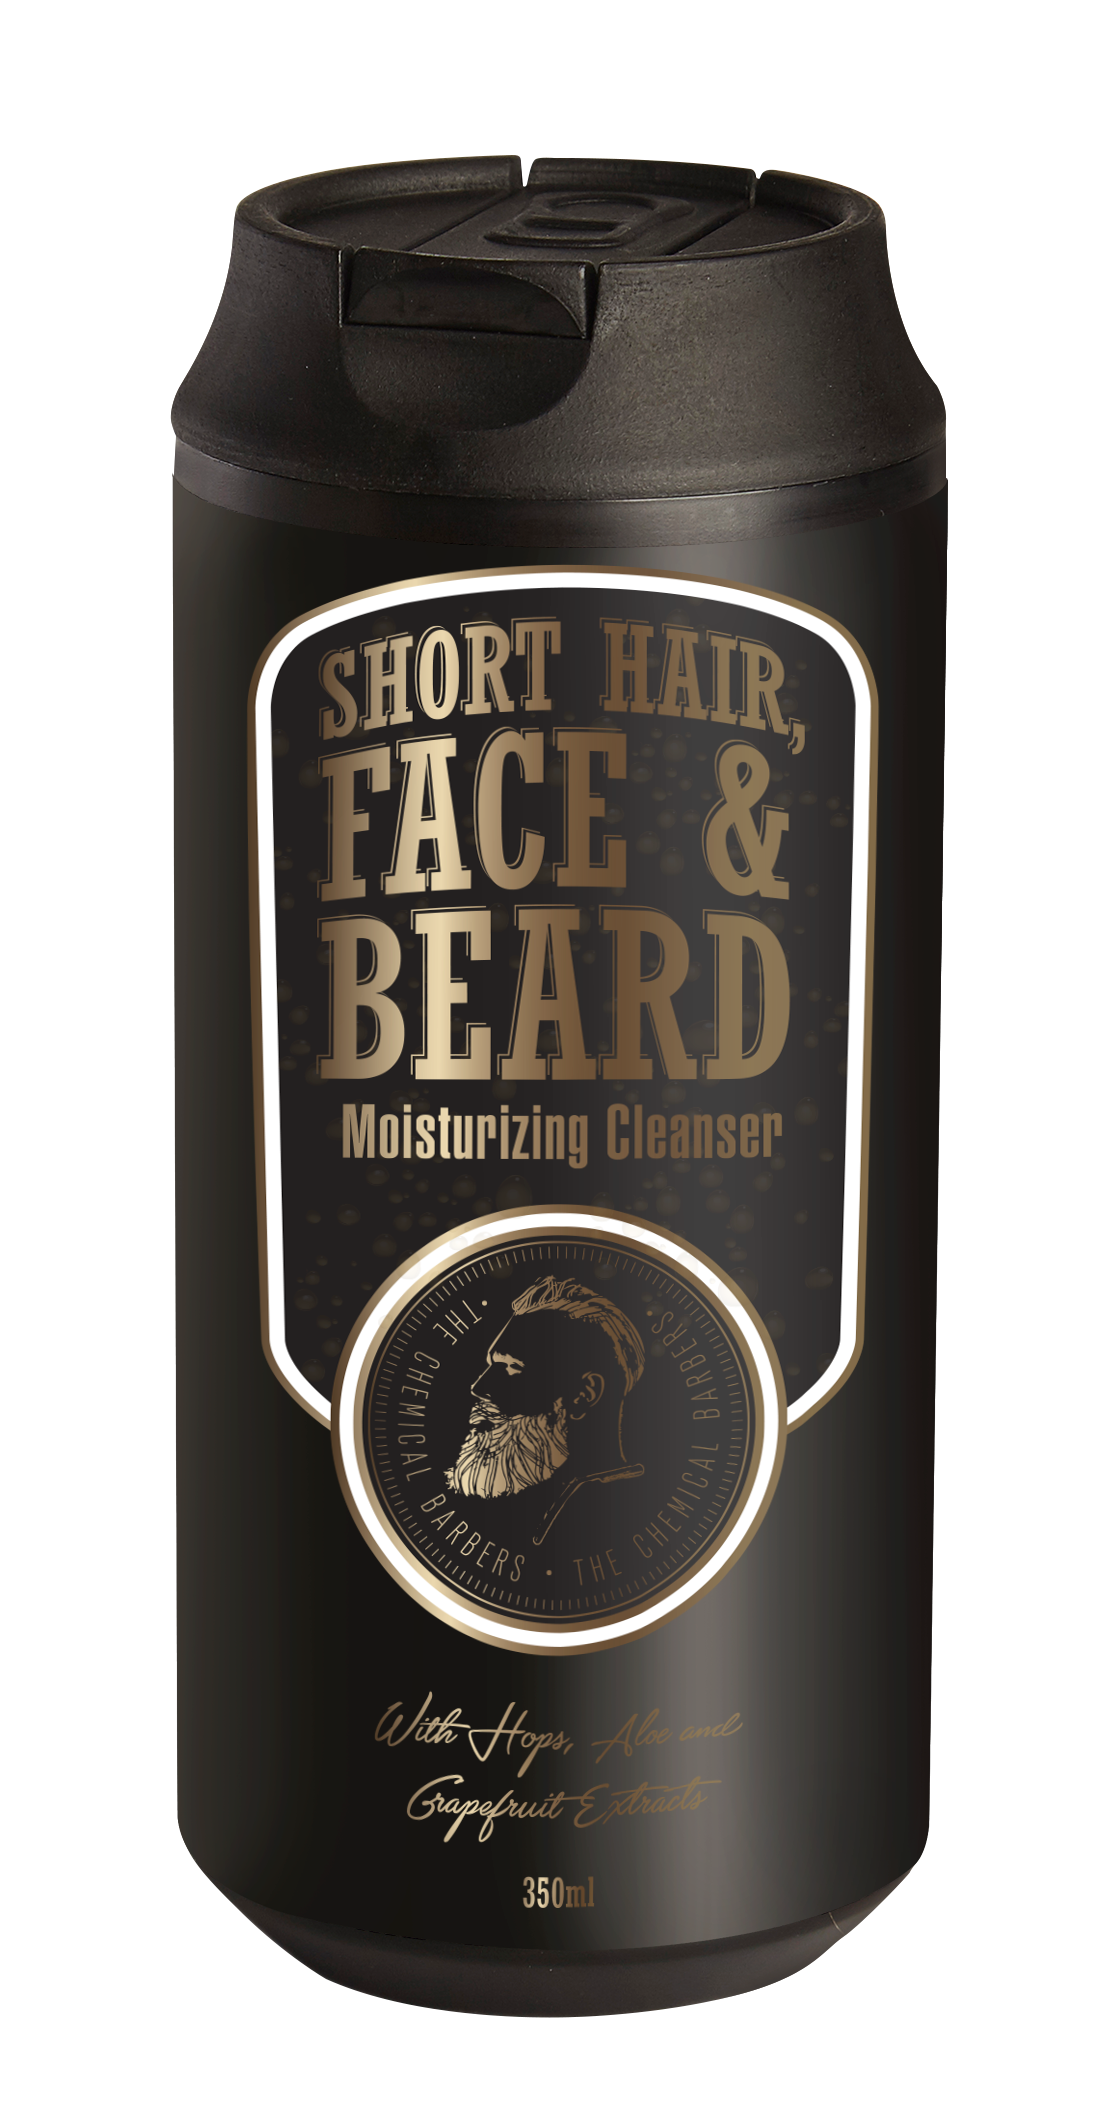 SHORT HAIR, FACE&BEARD MOISTURIZING CLEANSER